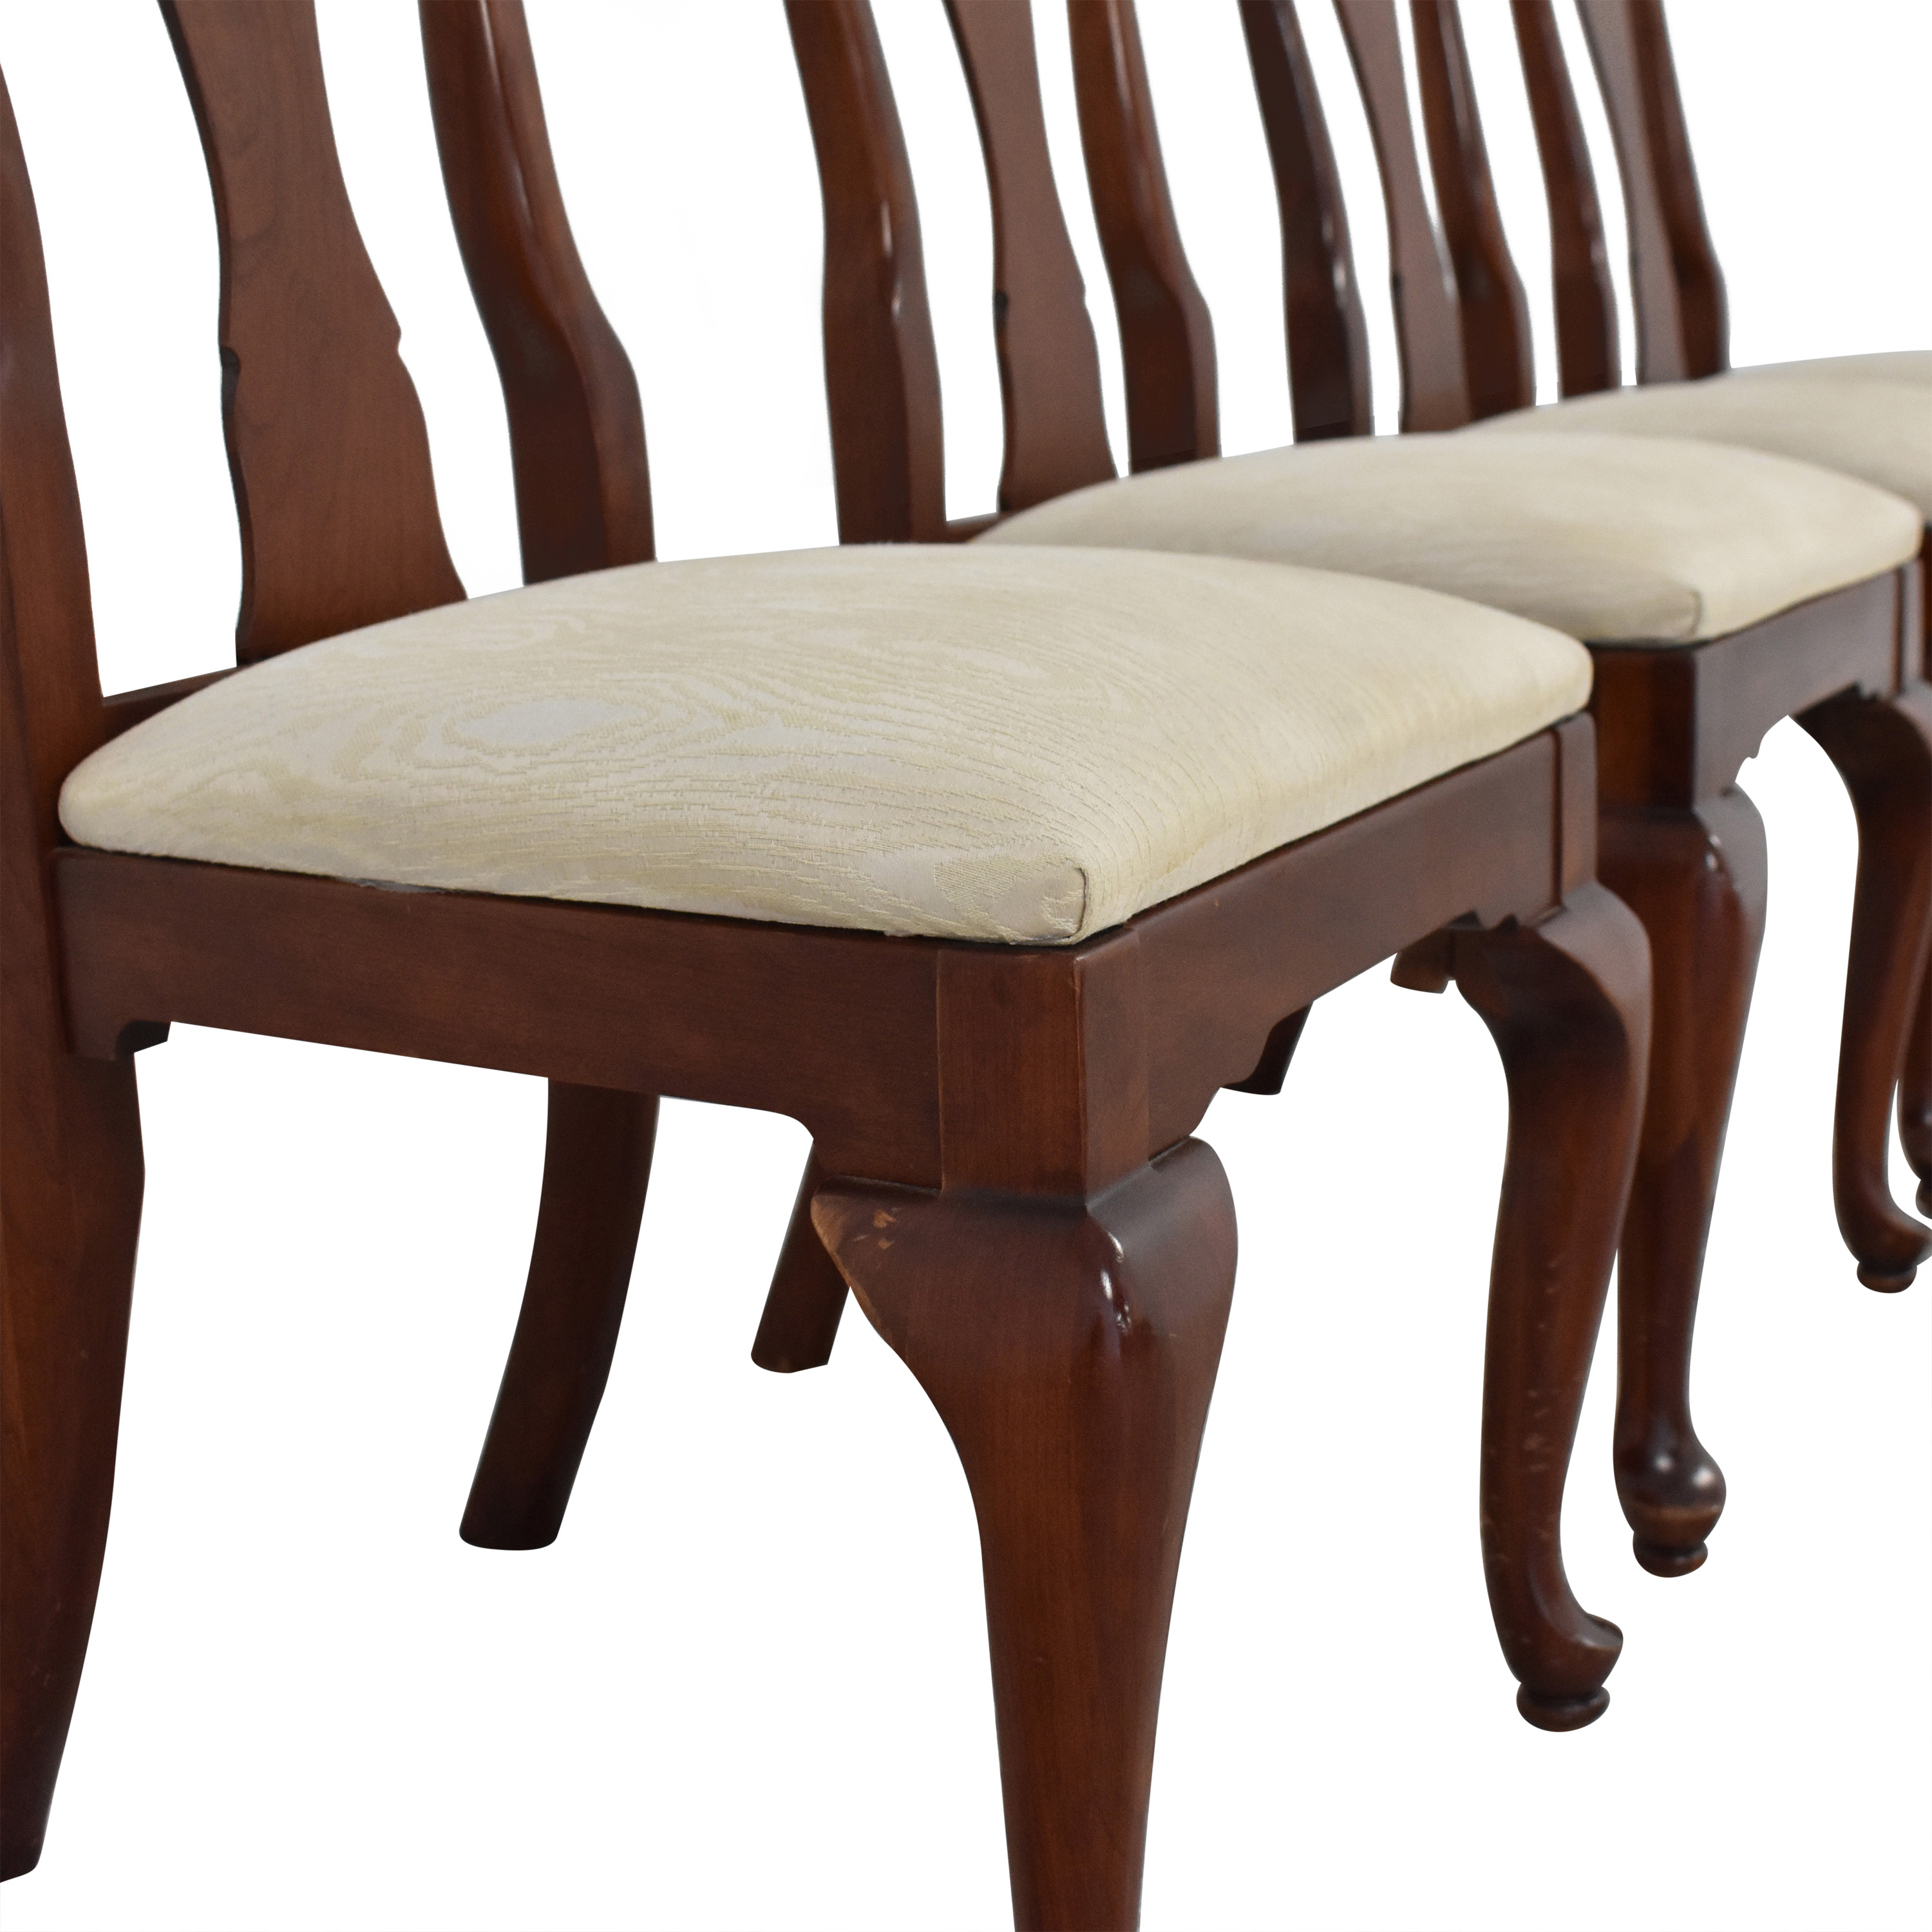 Knob Creek Knob Creek Penn Manor Dining Room Chairs white and brown